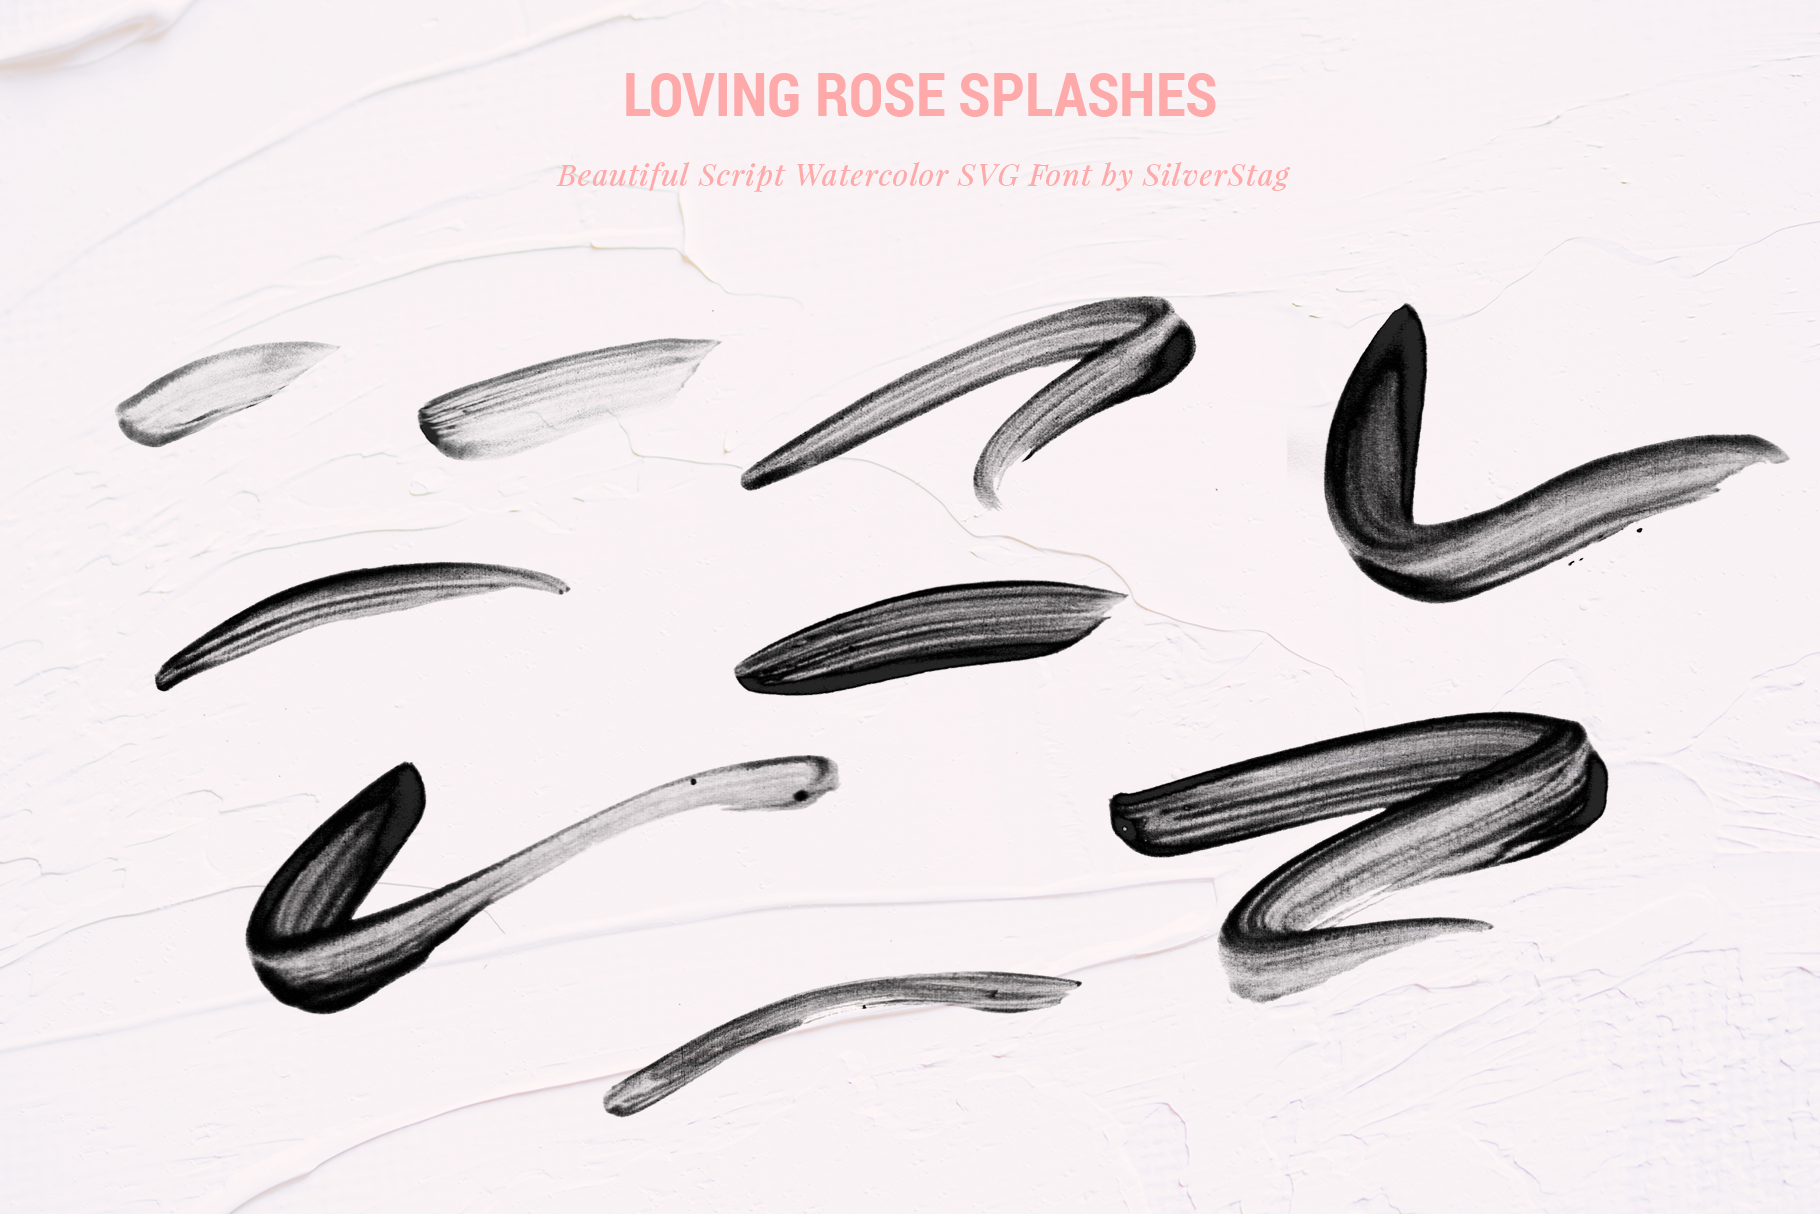 Loving Rose SVG Watercolor Font Pack - Hand Drawn Font example image 12